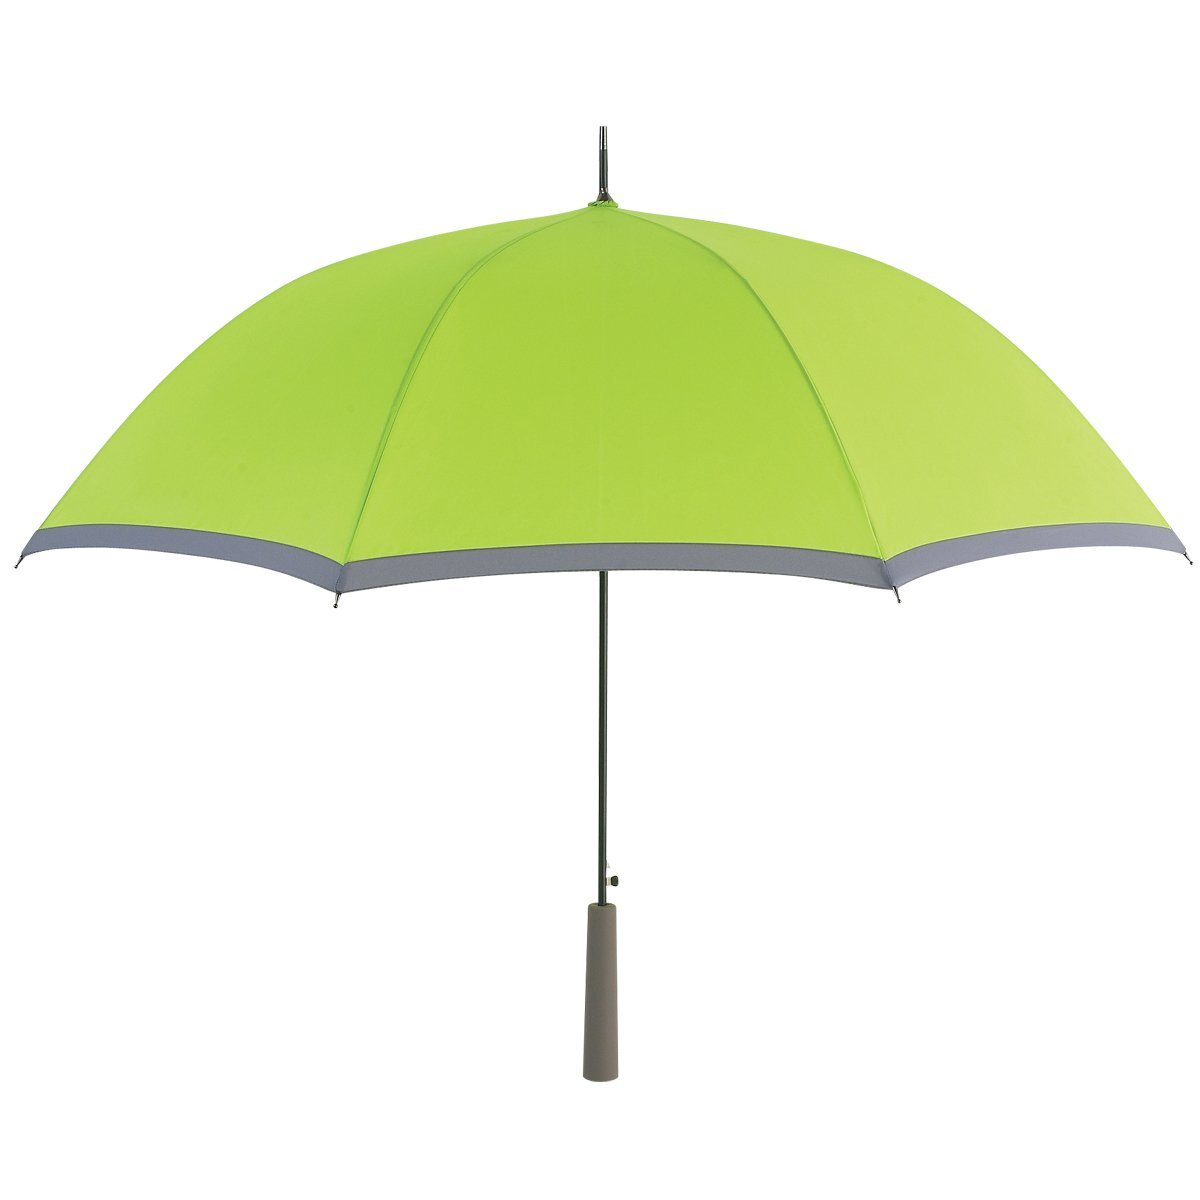 "Two-Tone Umbrella, 46"" Arc"